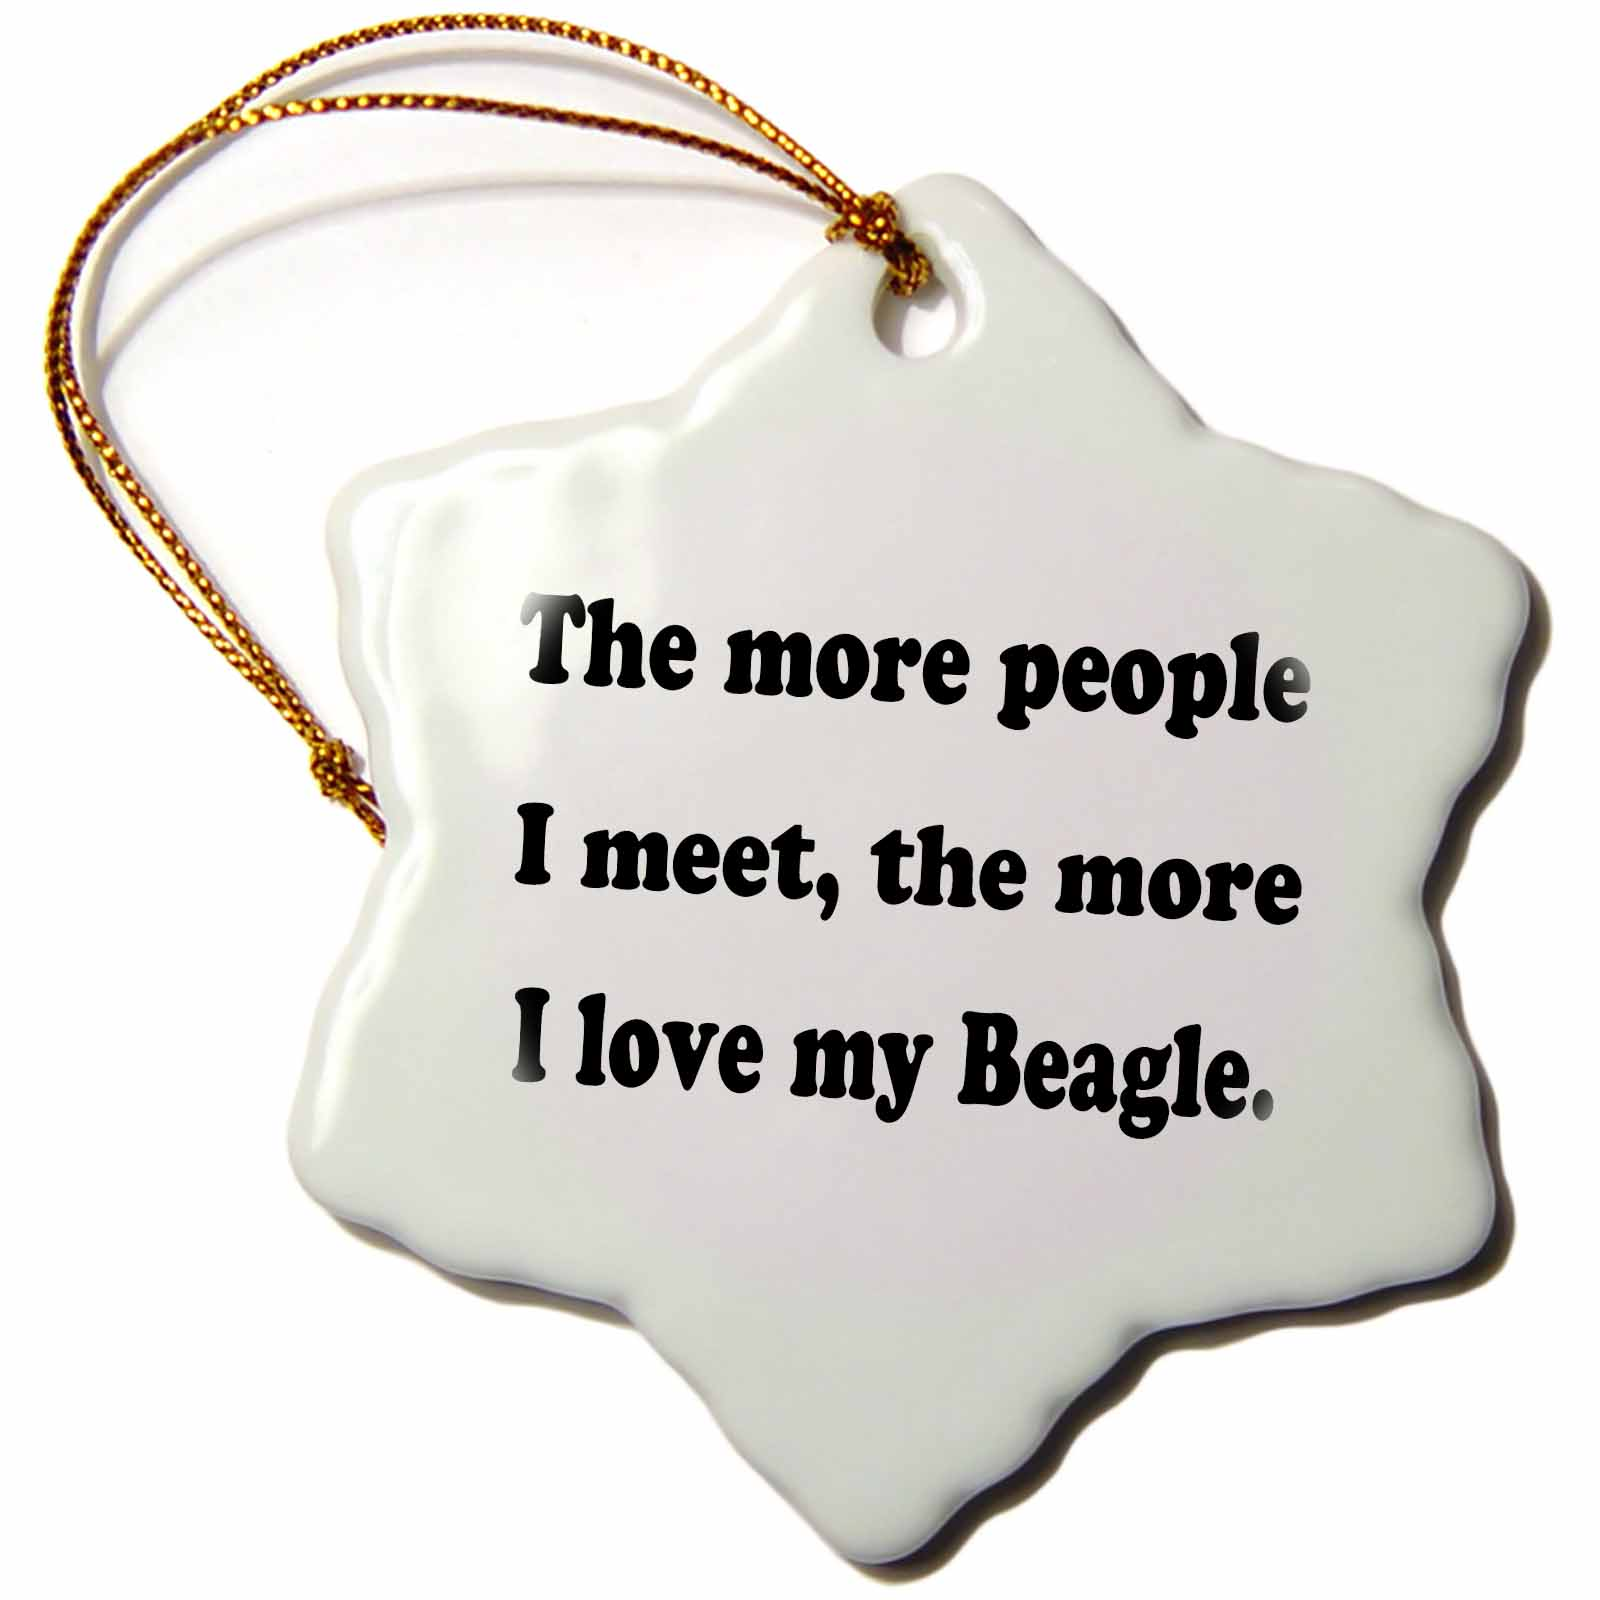 3dRose The more people I meet the more I love my Beagle, Snowflake Ornament, Porcelain, 3-inch